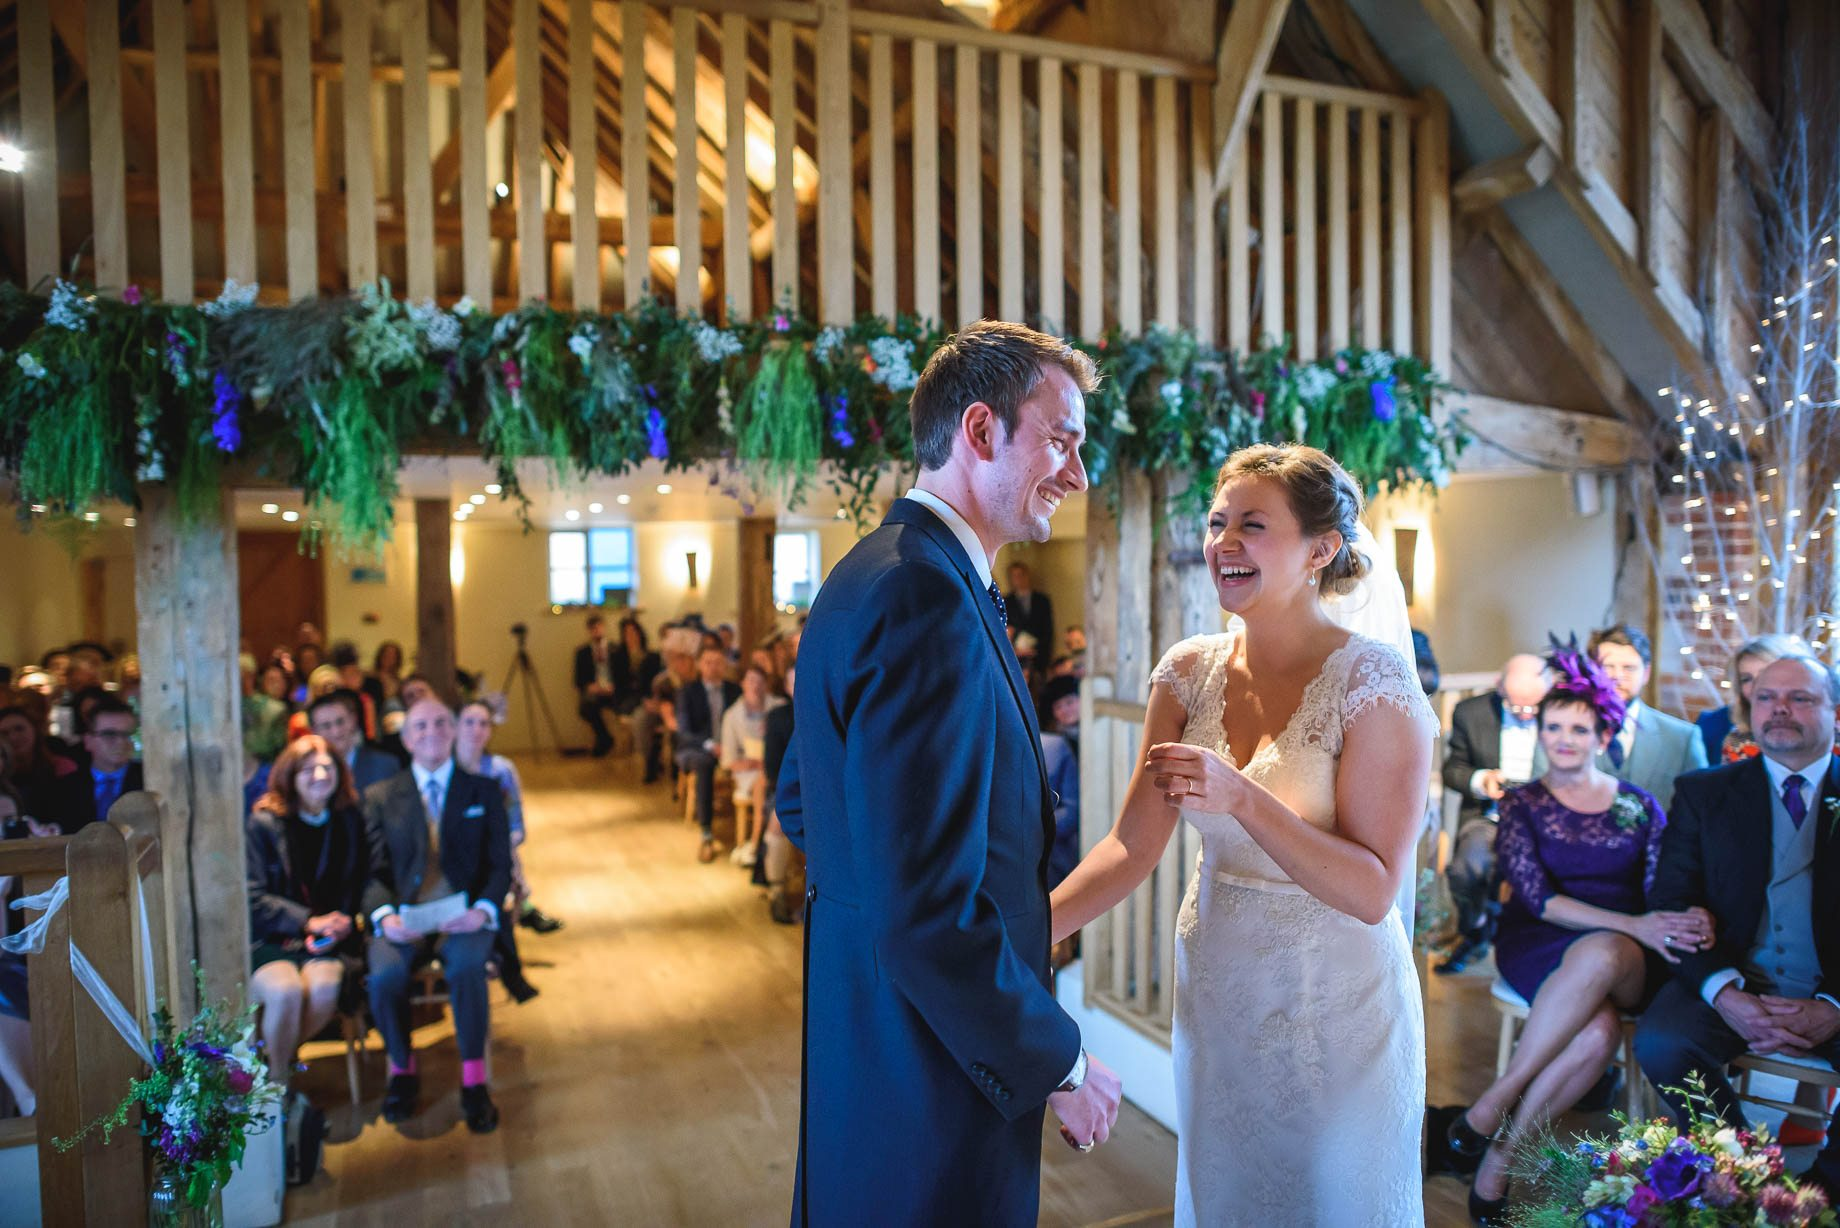 Bury Court Barn wedding photography - Ashley and Henry by Guy Collier Photography (51 of 188)